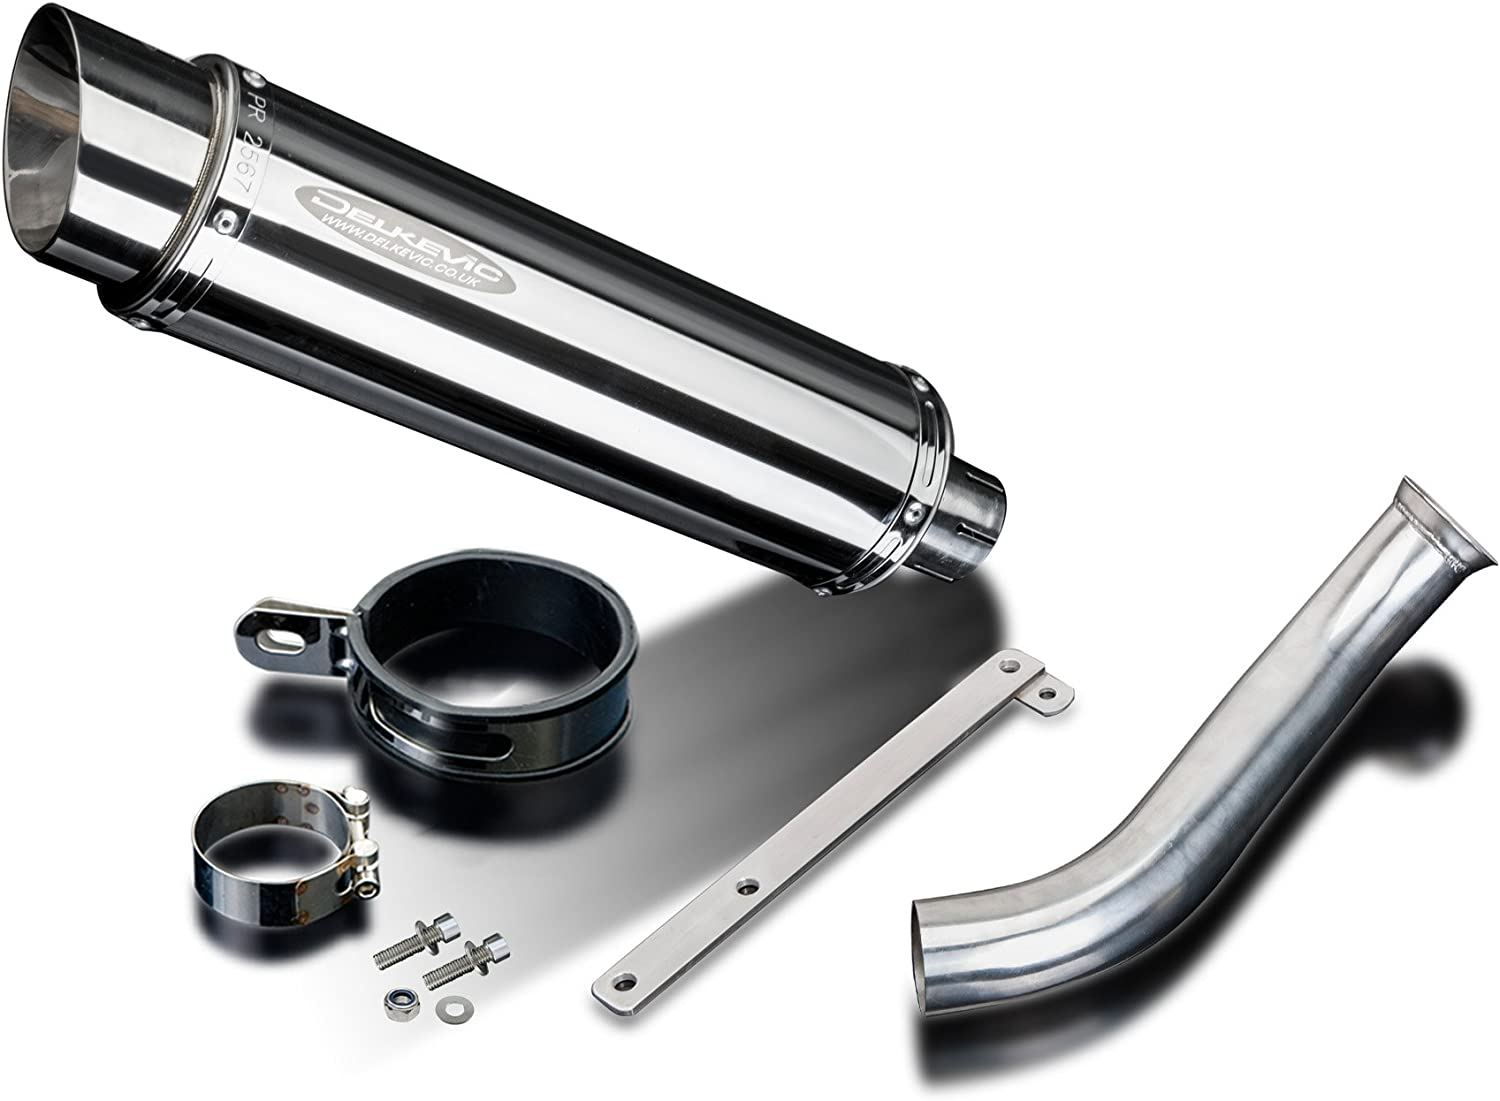 Delkevic Aftermarket Slip On compatible with Honda VFR750 SL10 14 Stainless Steel Round Muffler Exhaust 94-97